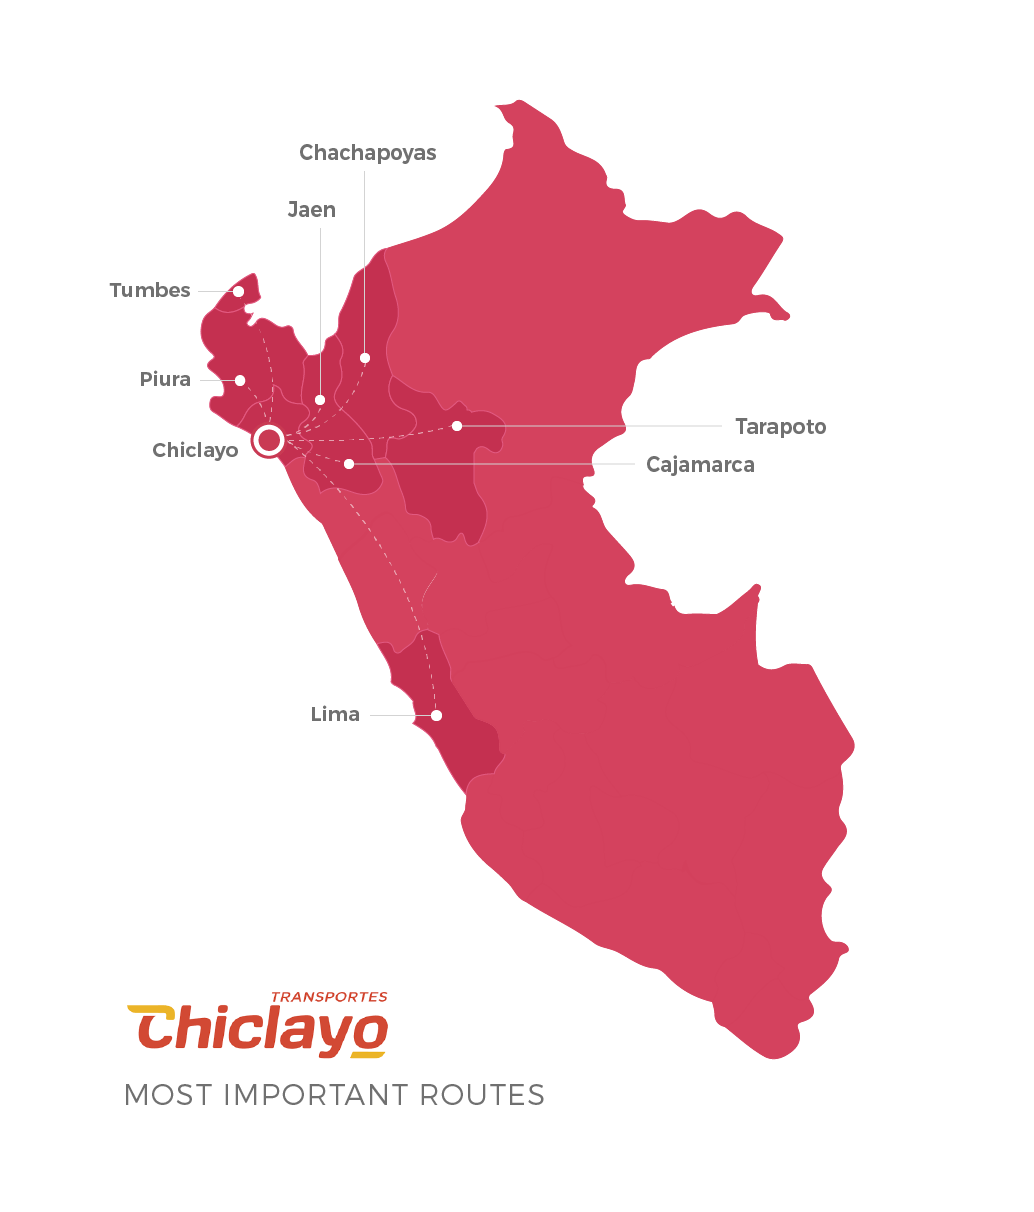 Transportes Chiclayo Routes